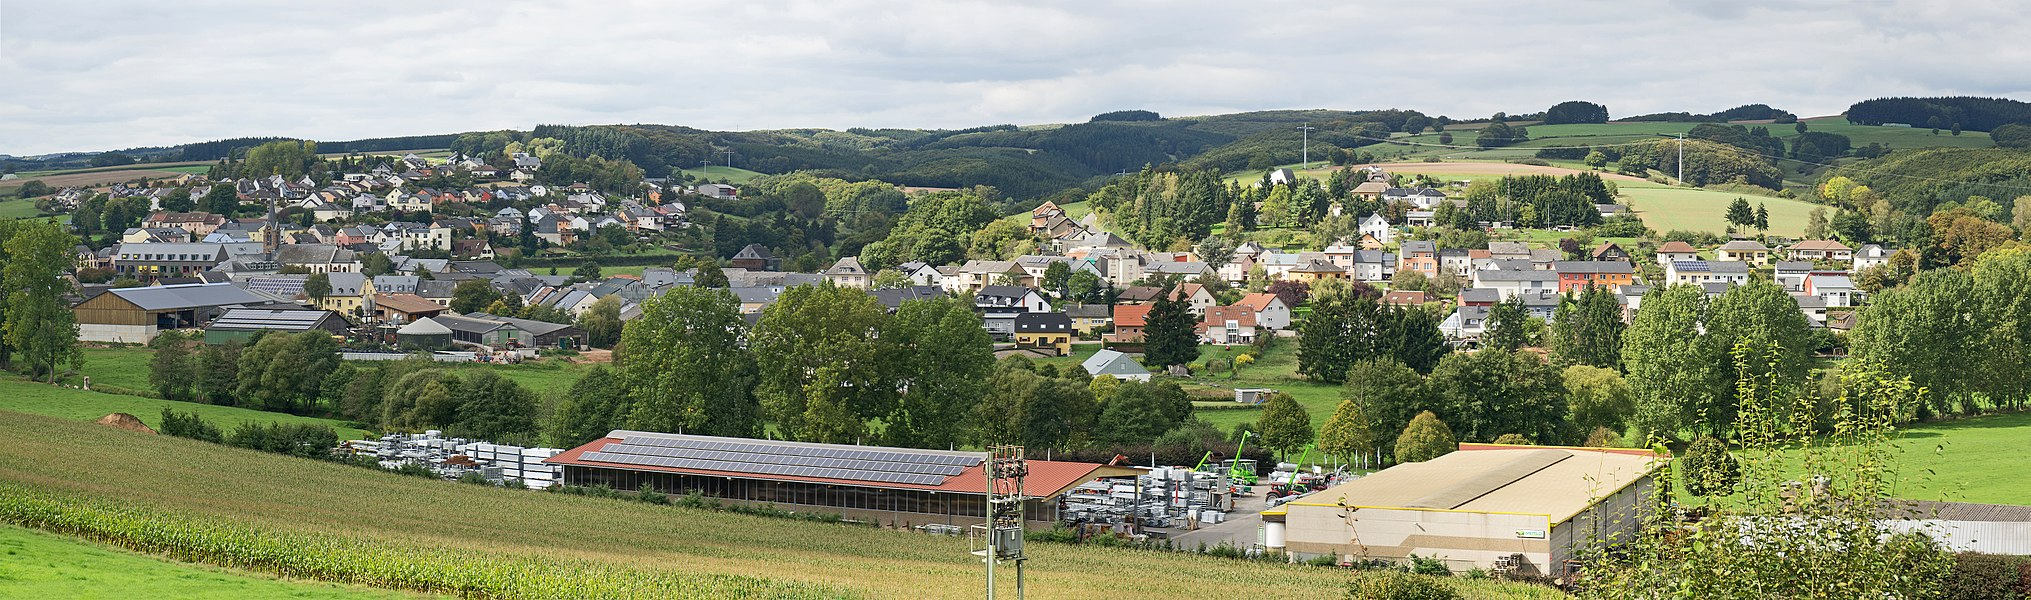 Niederfeulen as seen from the  N15